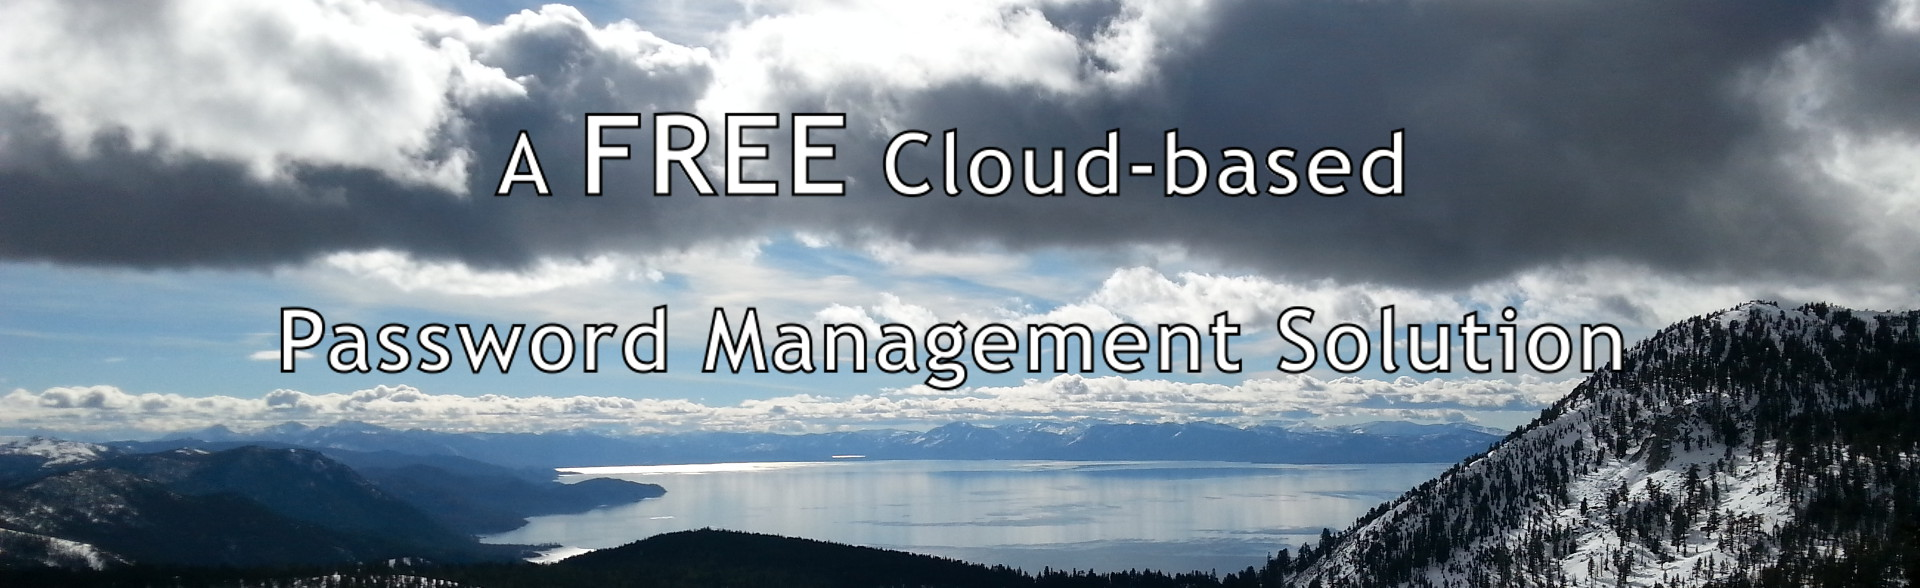 free cloud-based password manager